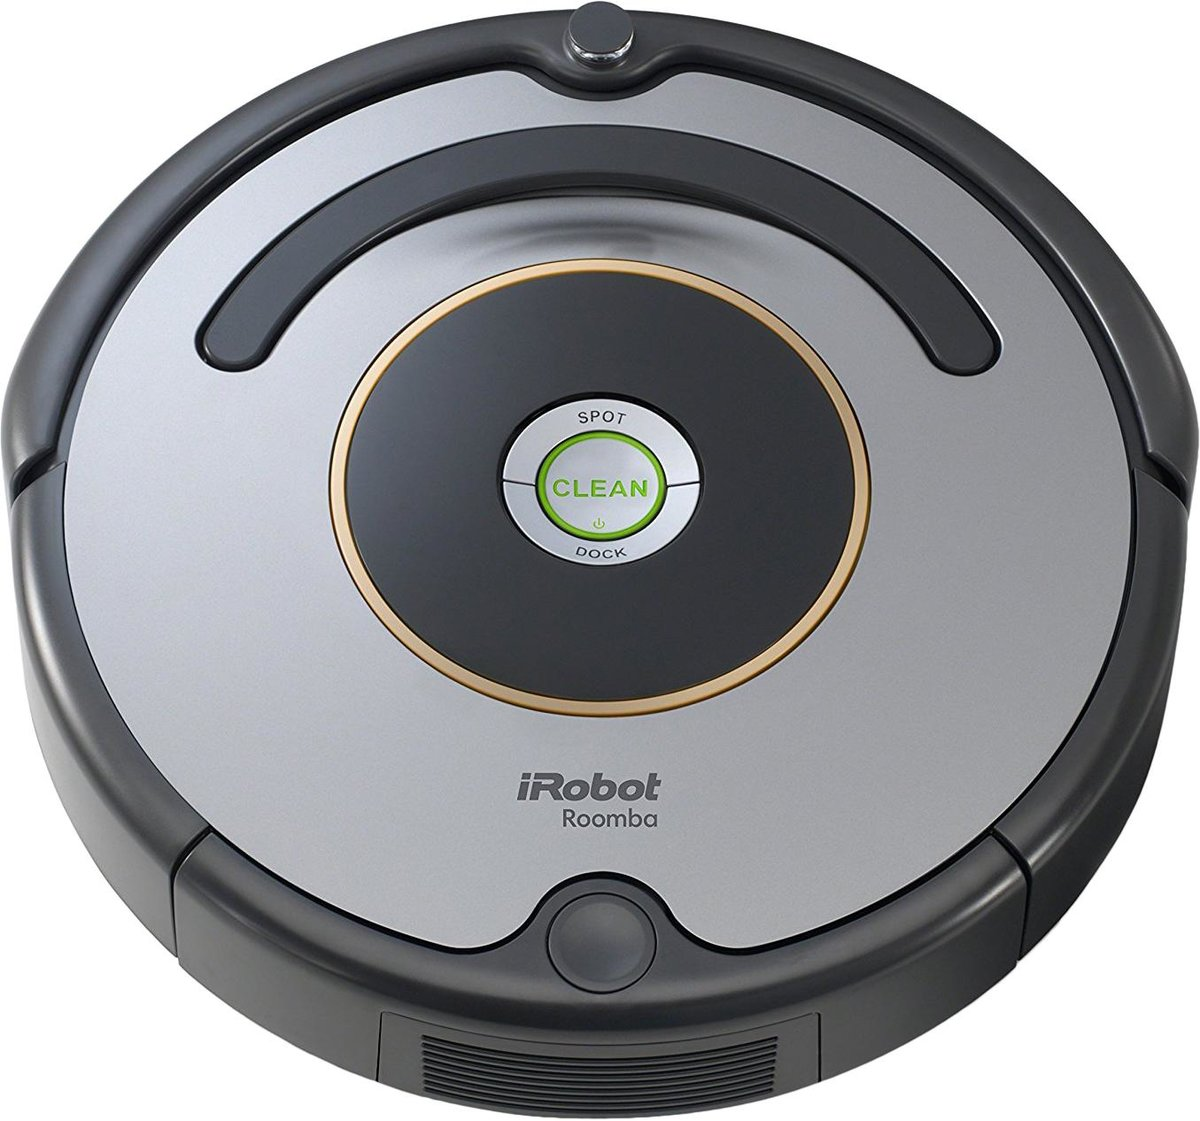 irobot roomba 616 card from user in yandex collections. Black Bedroom Furniture Sets. Home Design Ideas